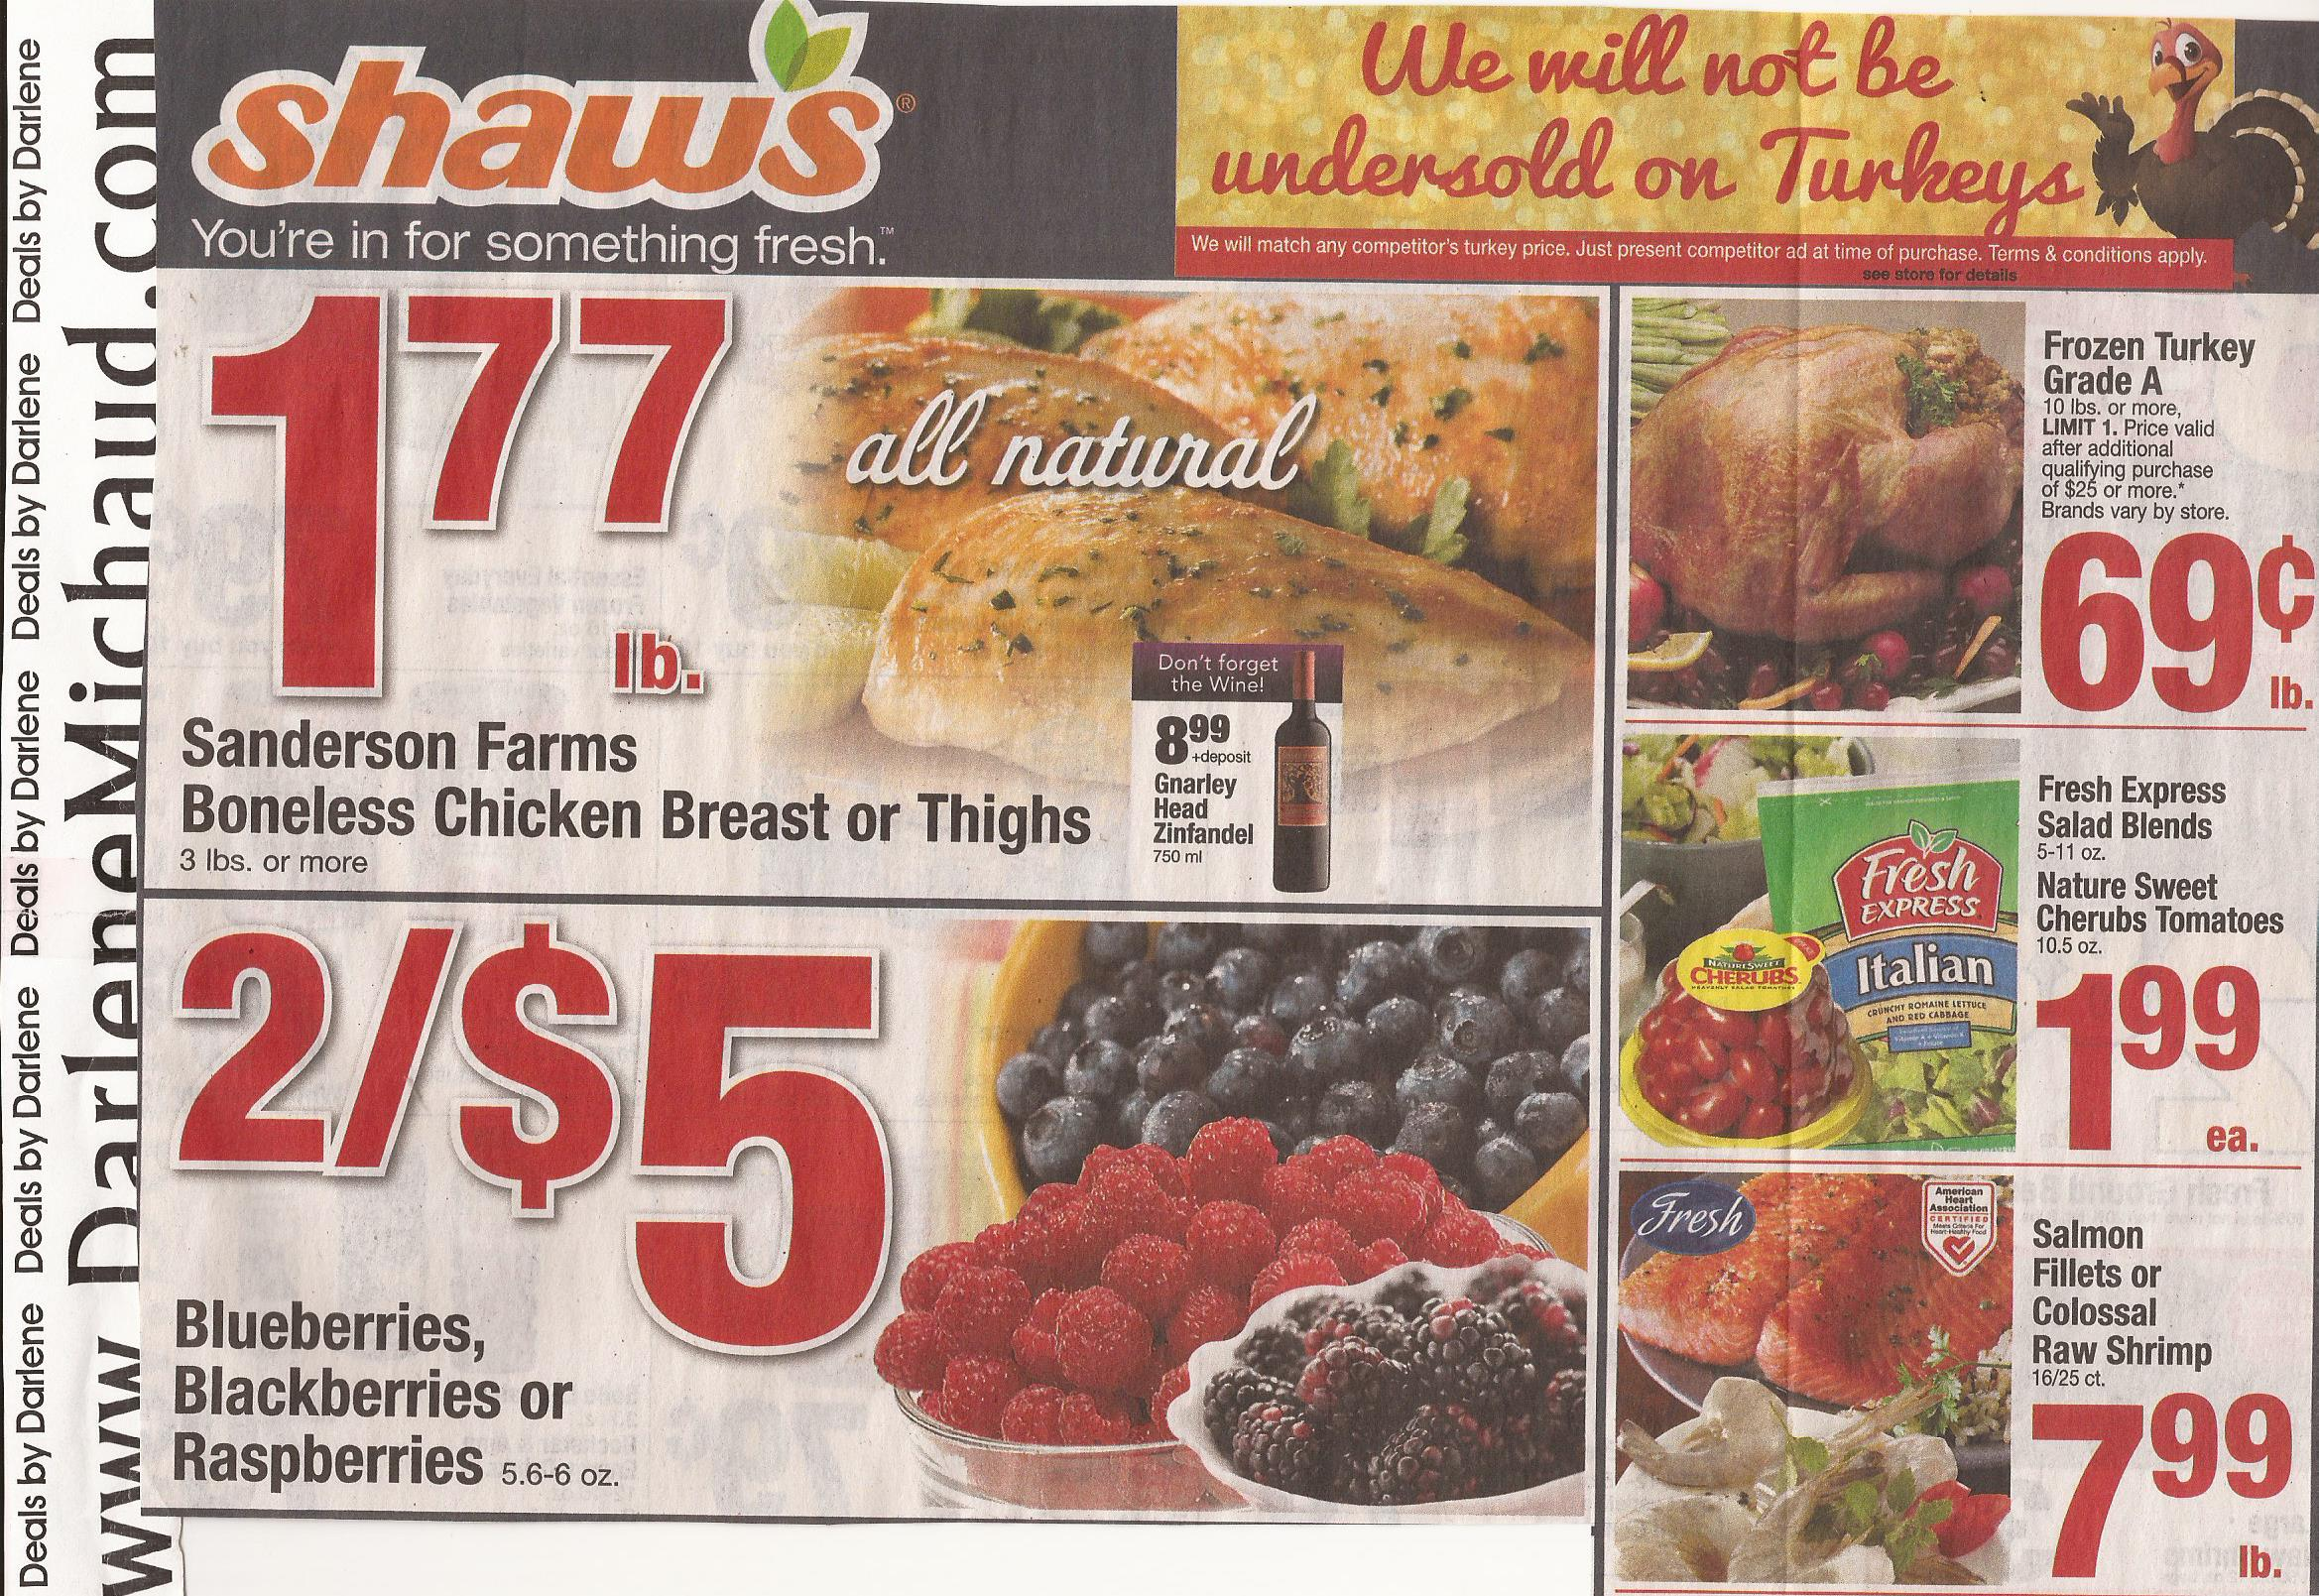 shaws-flyer-oct-30-nov-5-page-1a